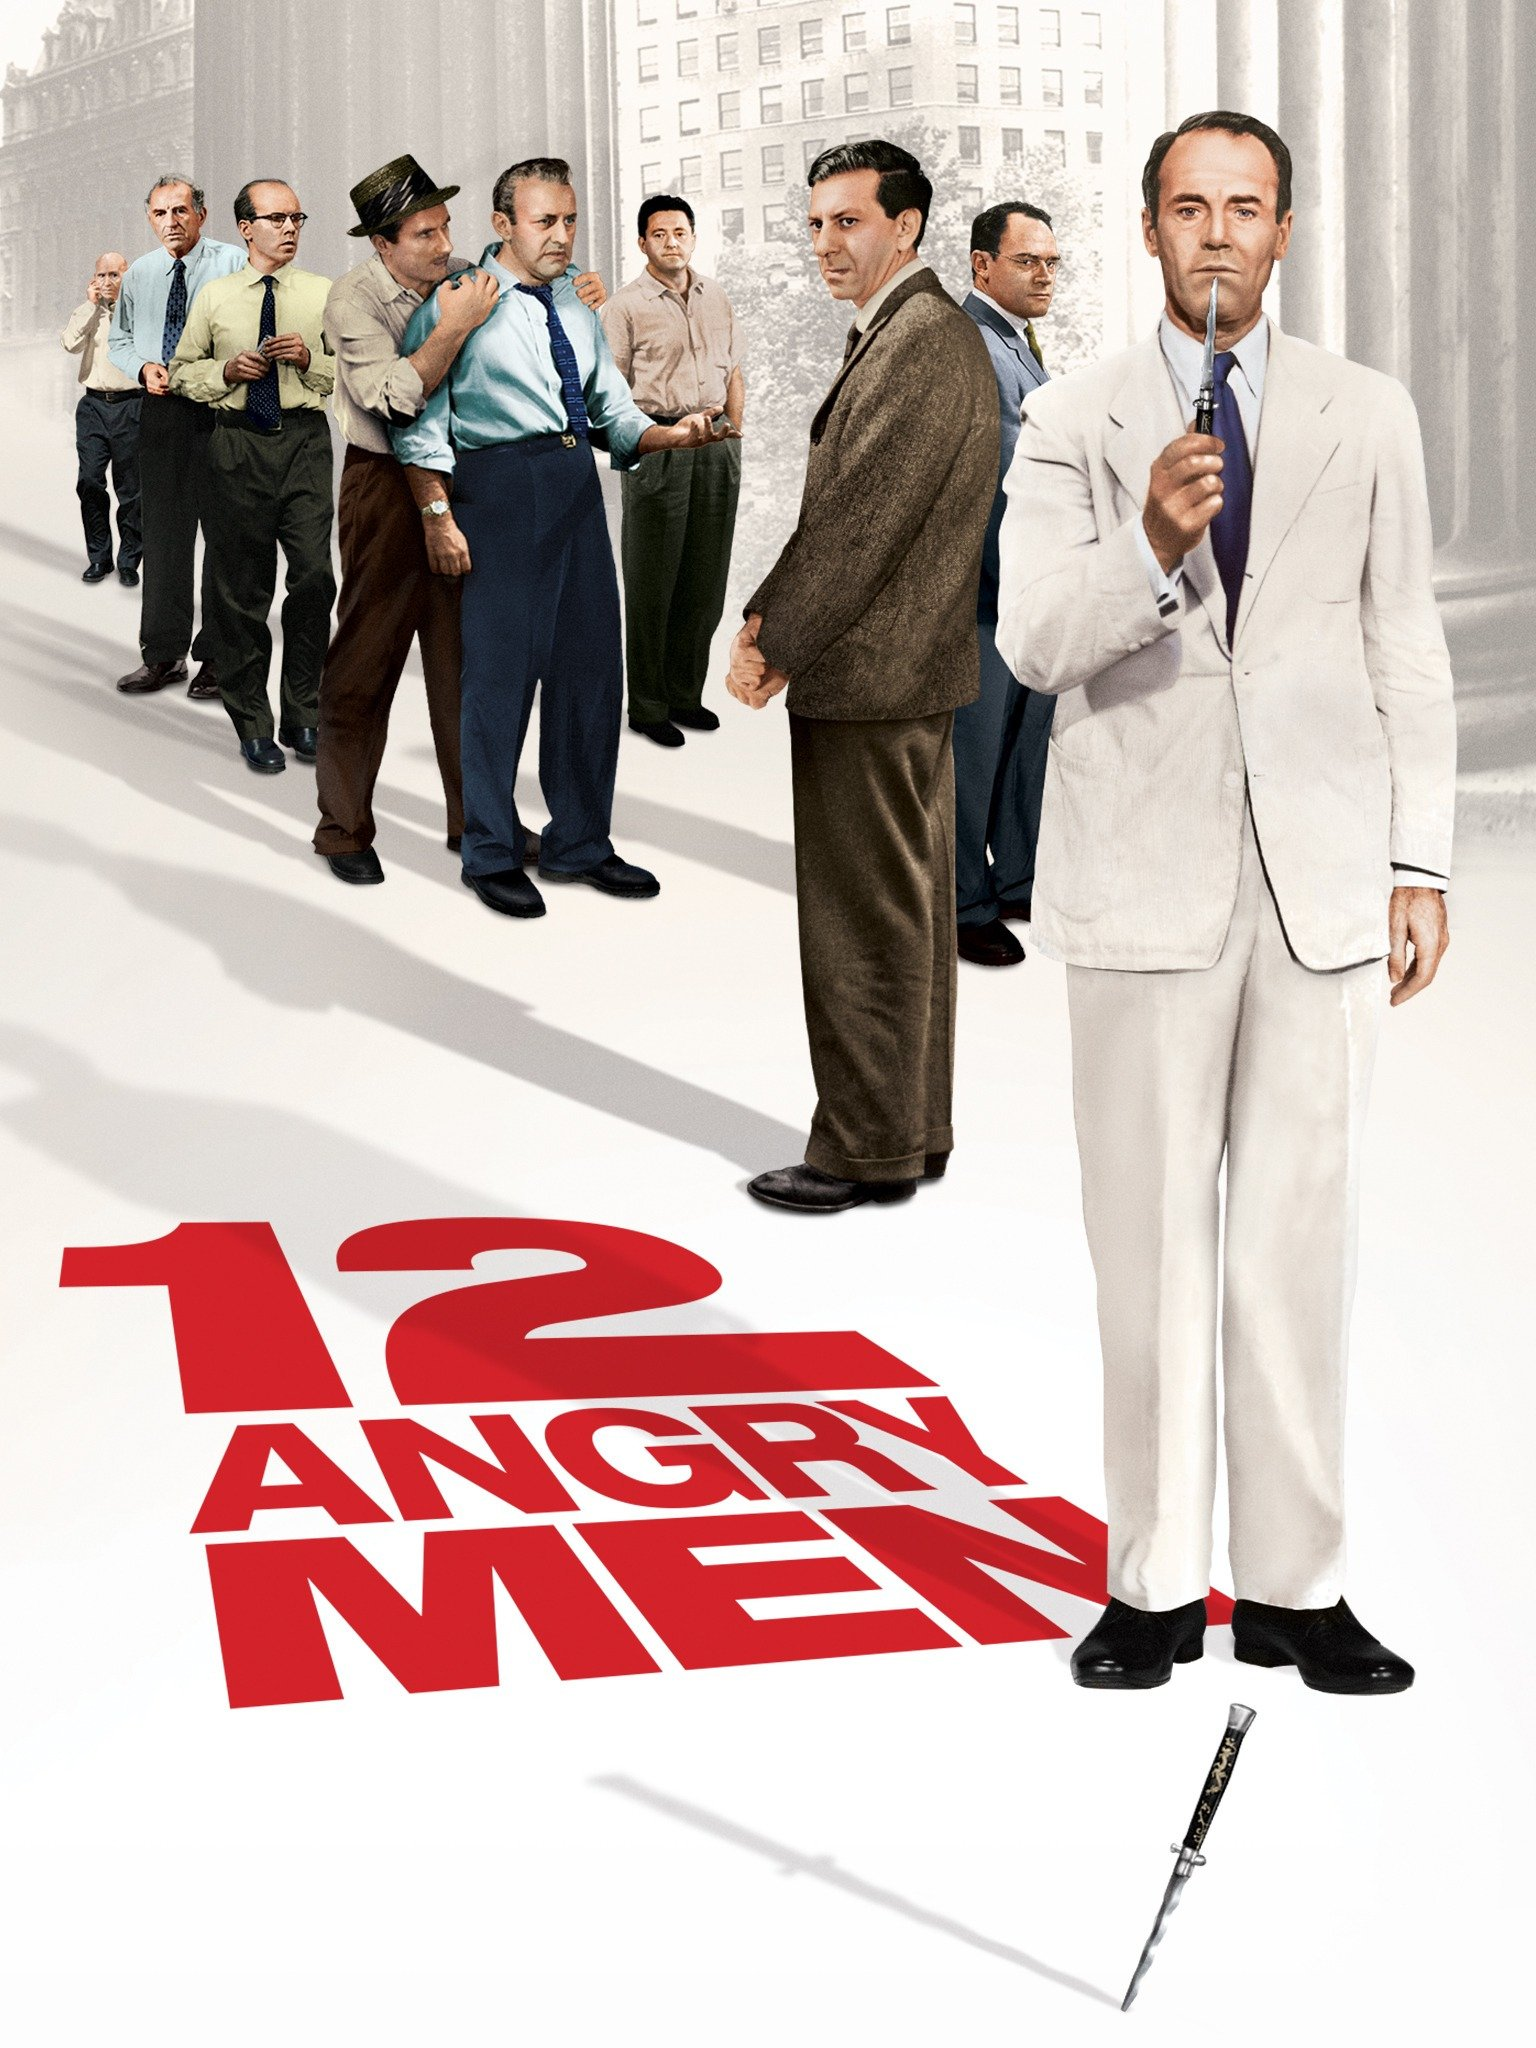 12 Angry Men - The 1957 Movie (Part 2)